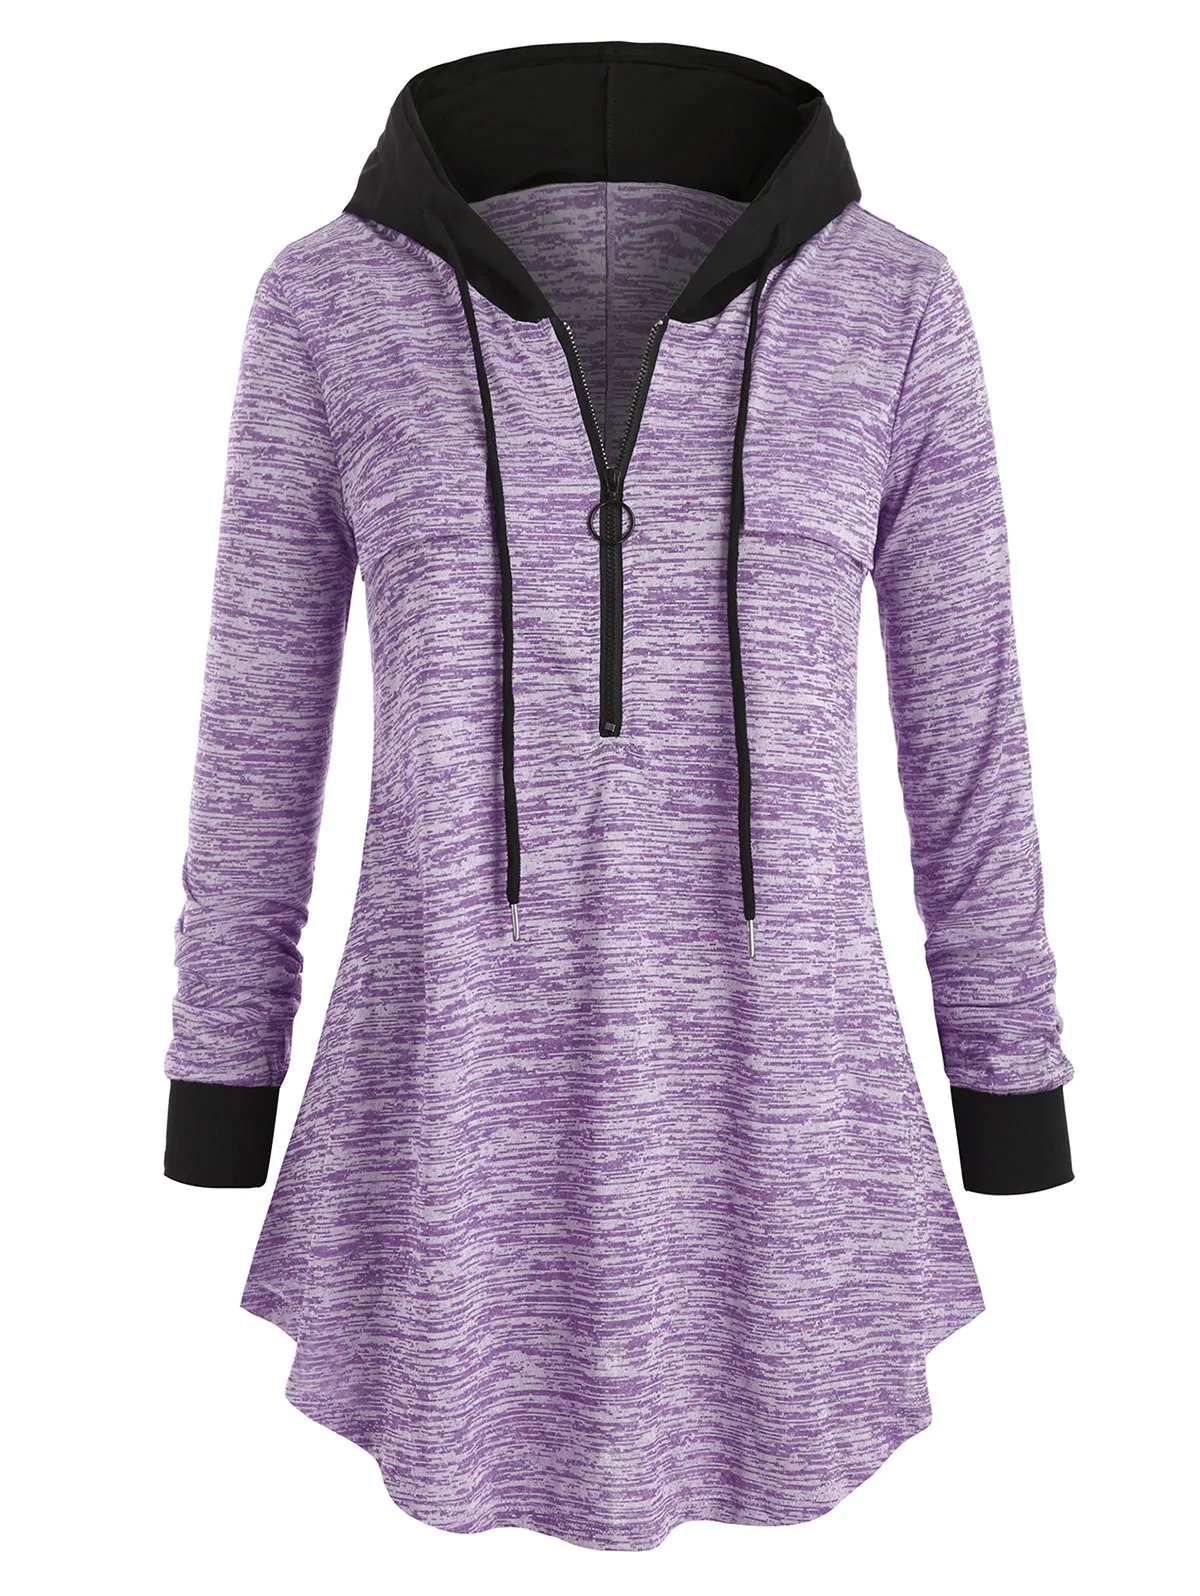 Plus Size Space Dye Half-zip Hooded Tunic Top - 1x